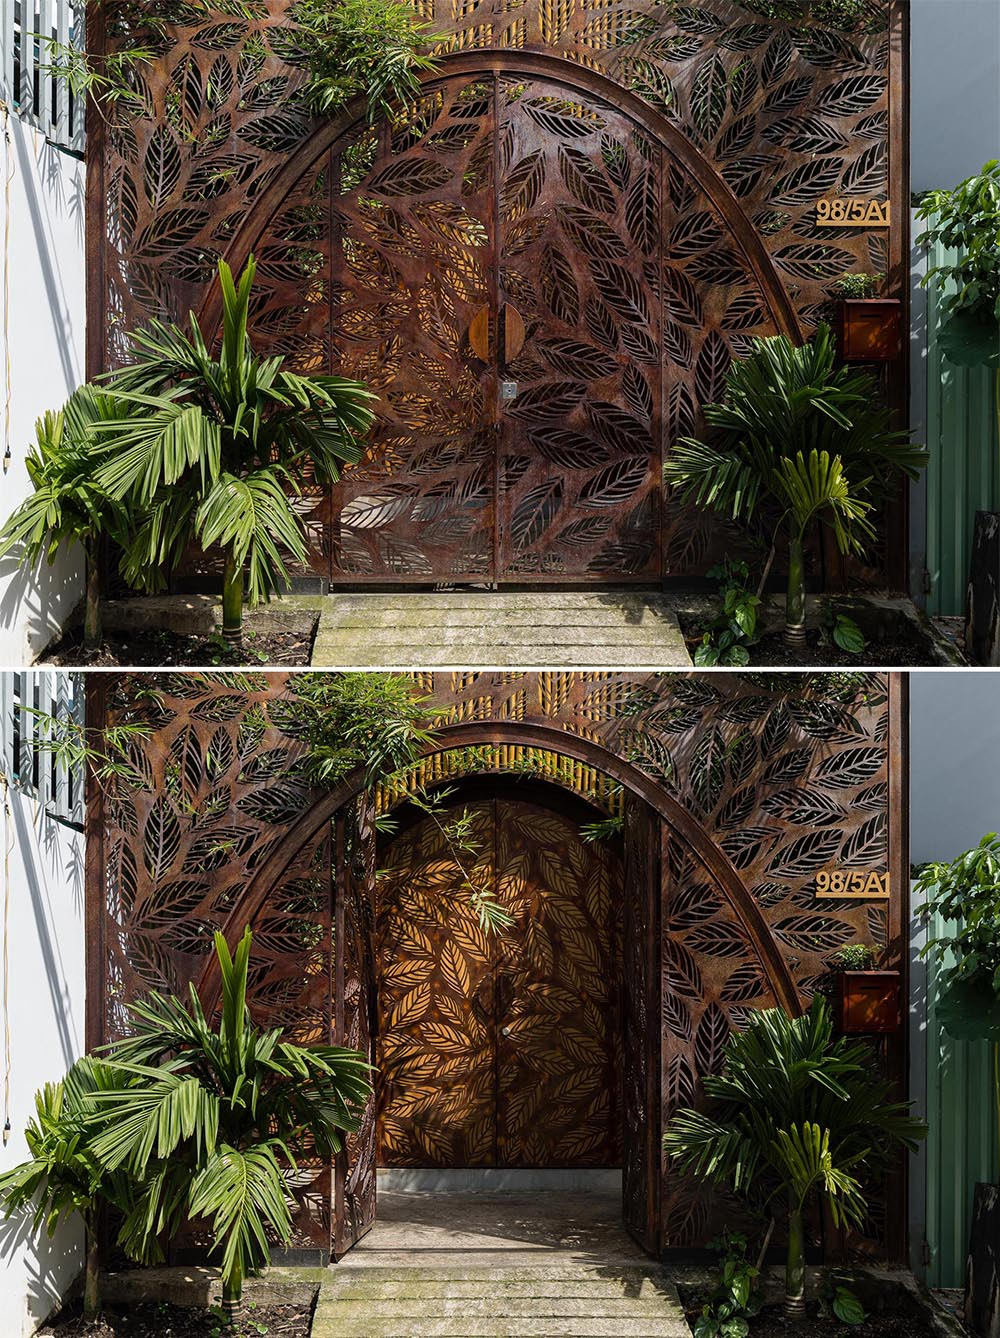 Arched metal doors with a leaf motif greets visitors to this modern house.